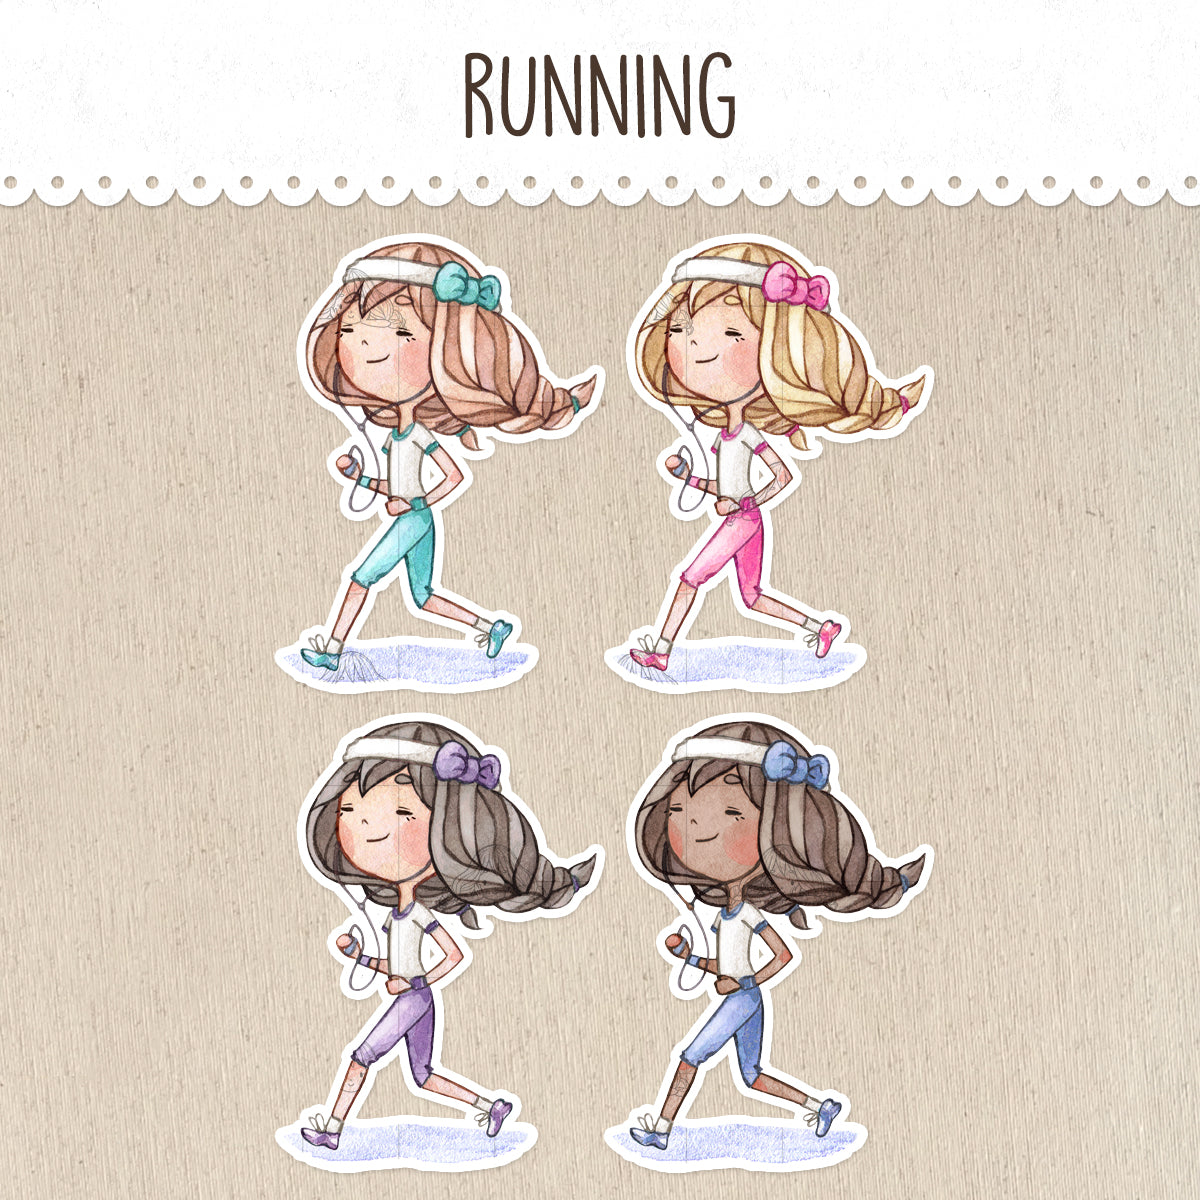 Runner, Running a Marathon Stickers ~Kawaii girls~